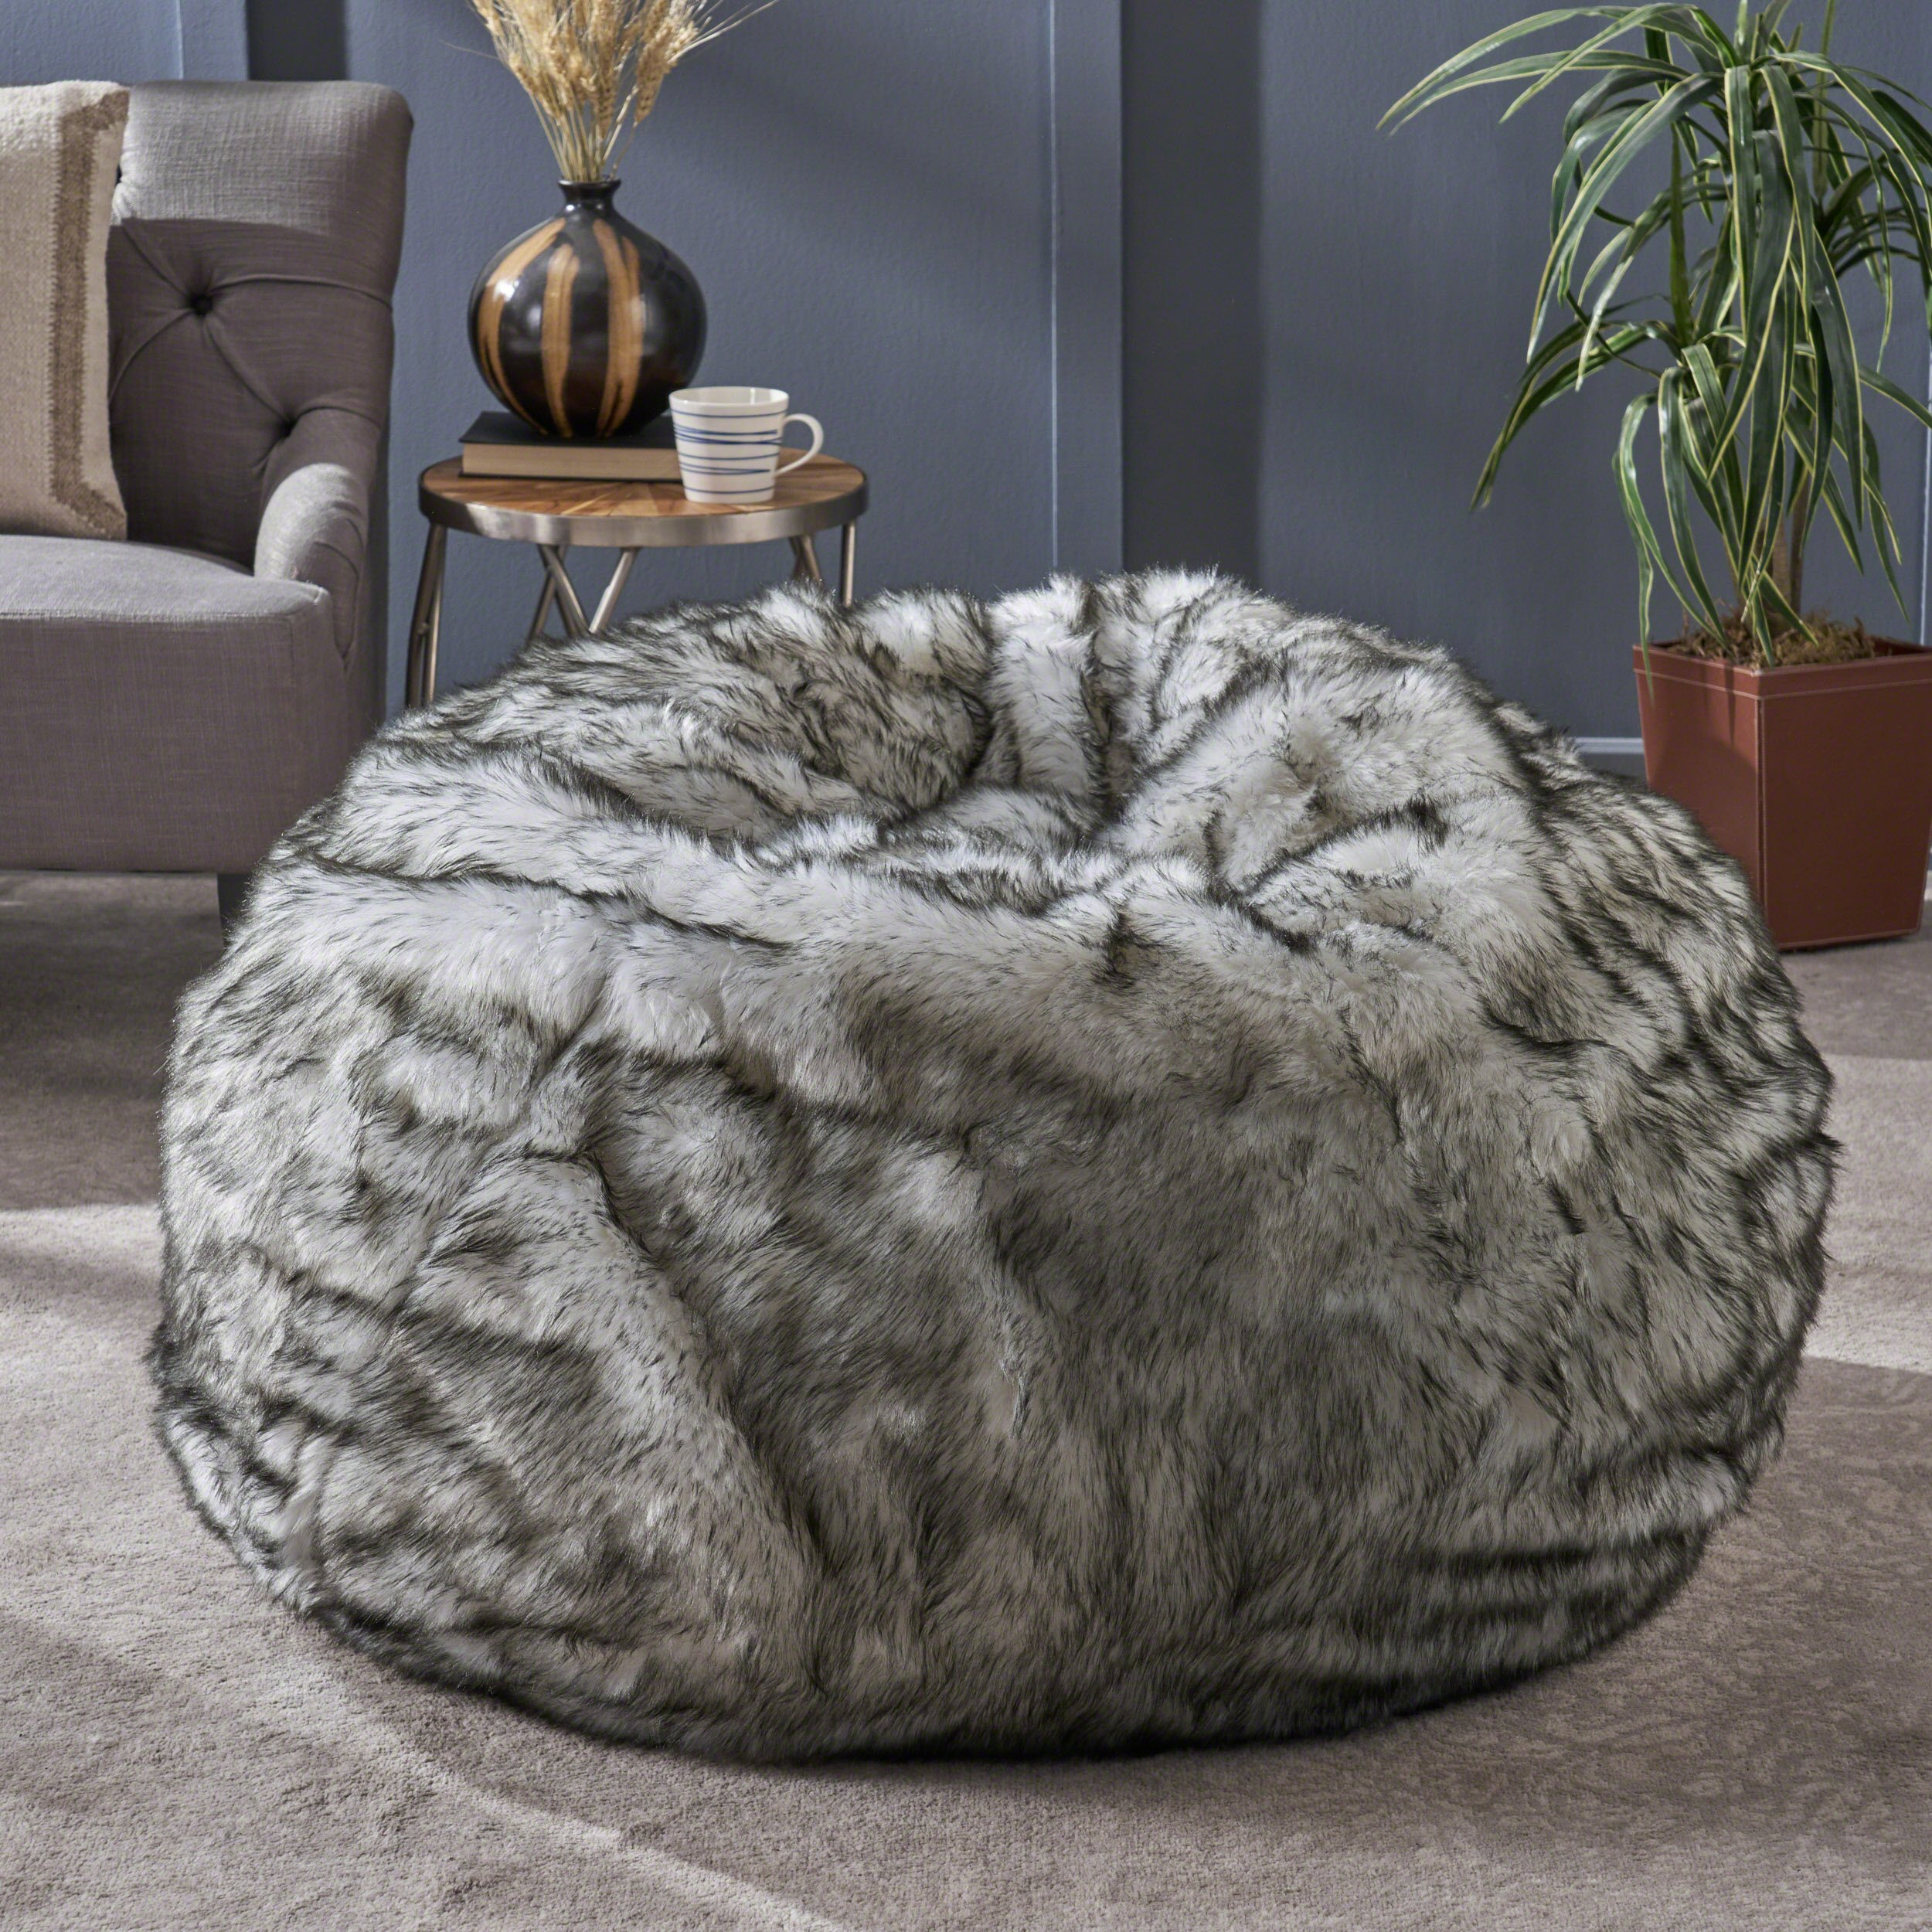 Christopher Knight Home Laraine Furry Glam White and Grey Streak Faux Fur 3 Ft. Bean Bag by Christopher Knight Home